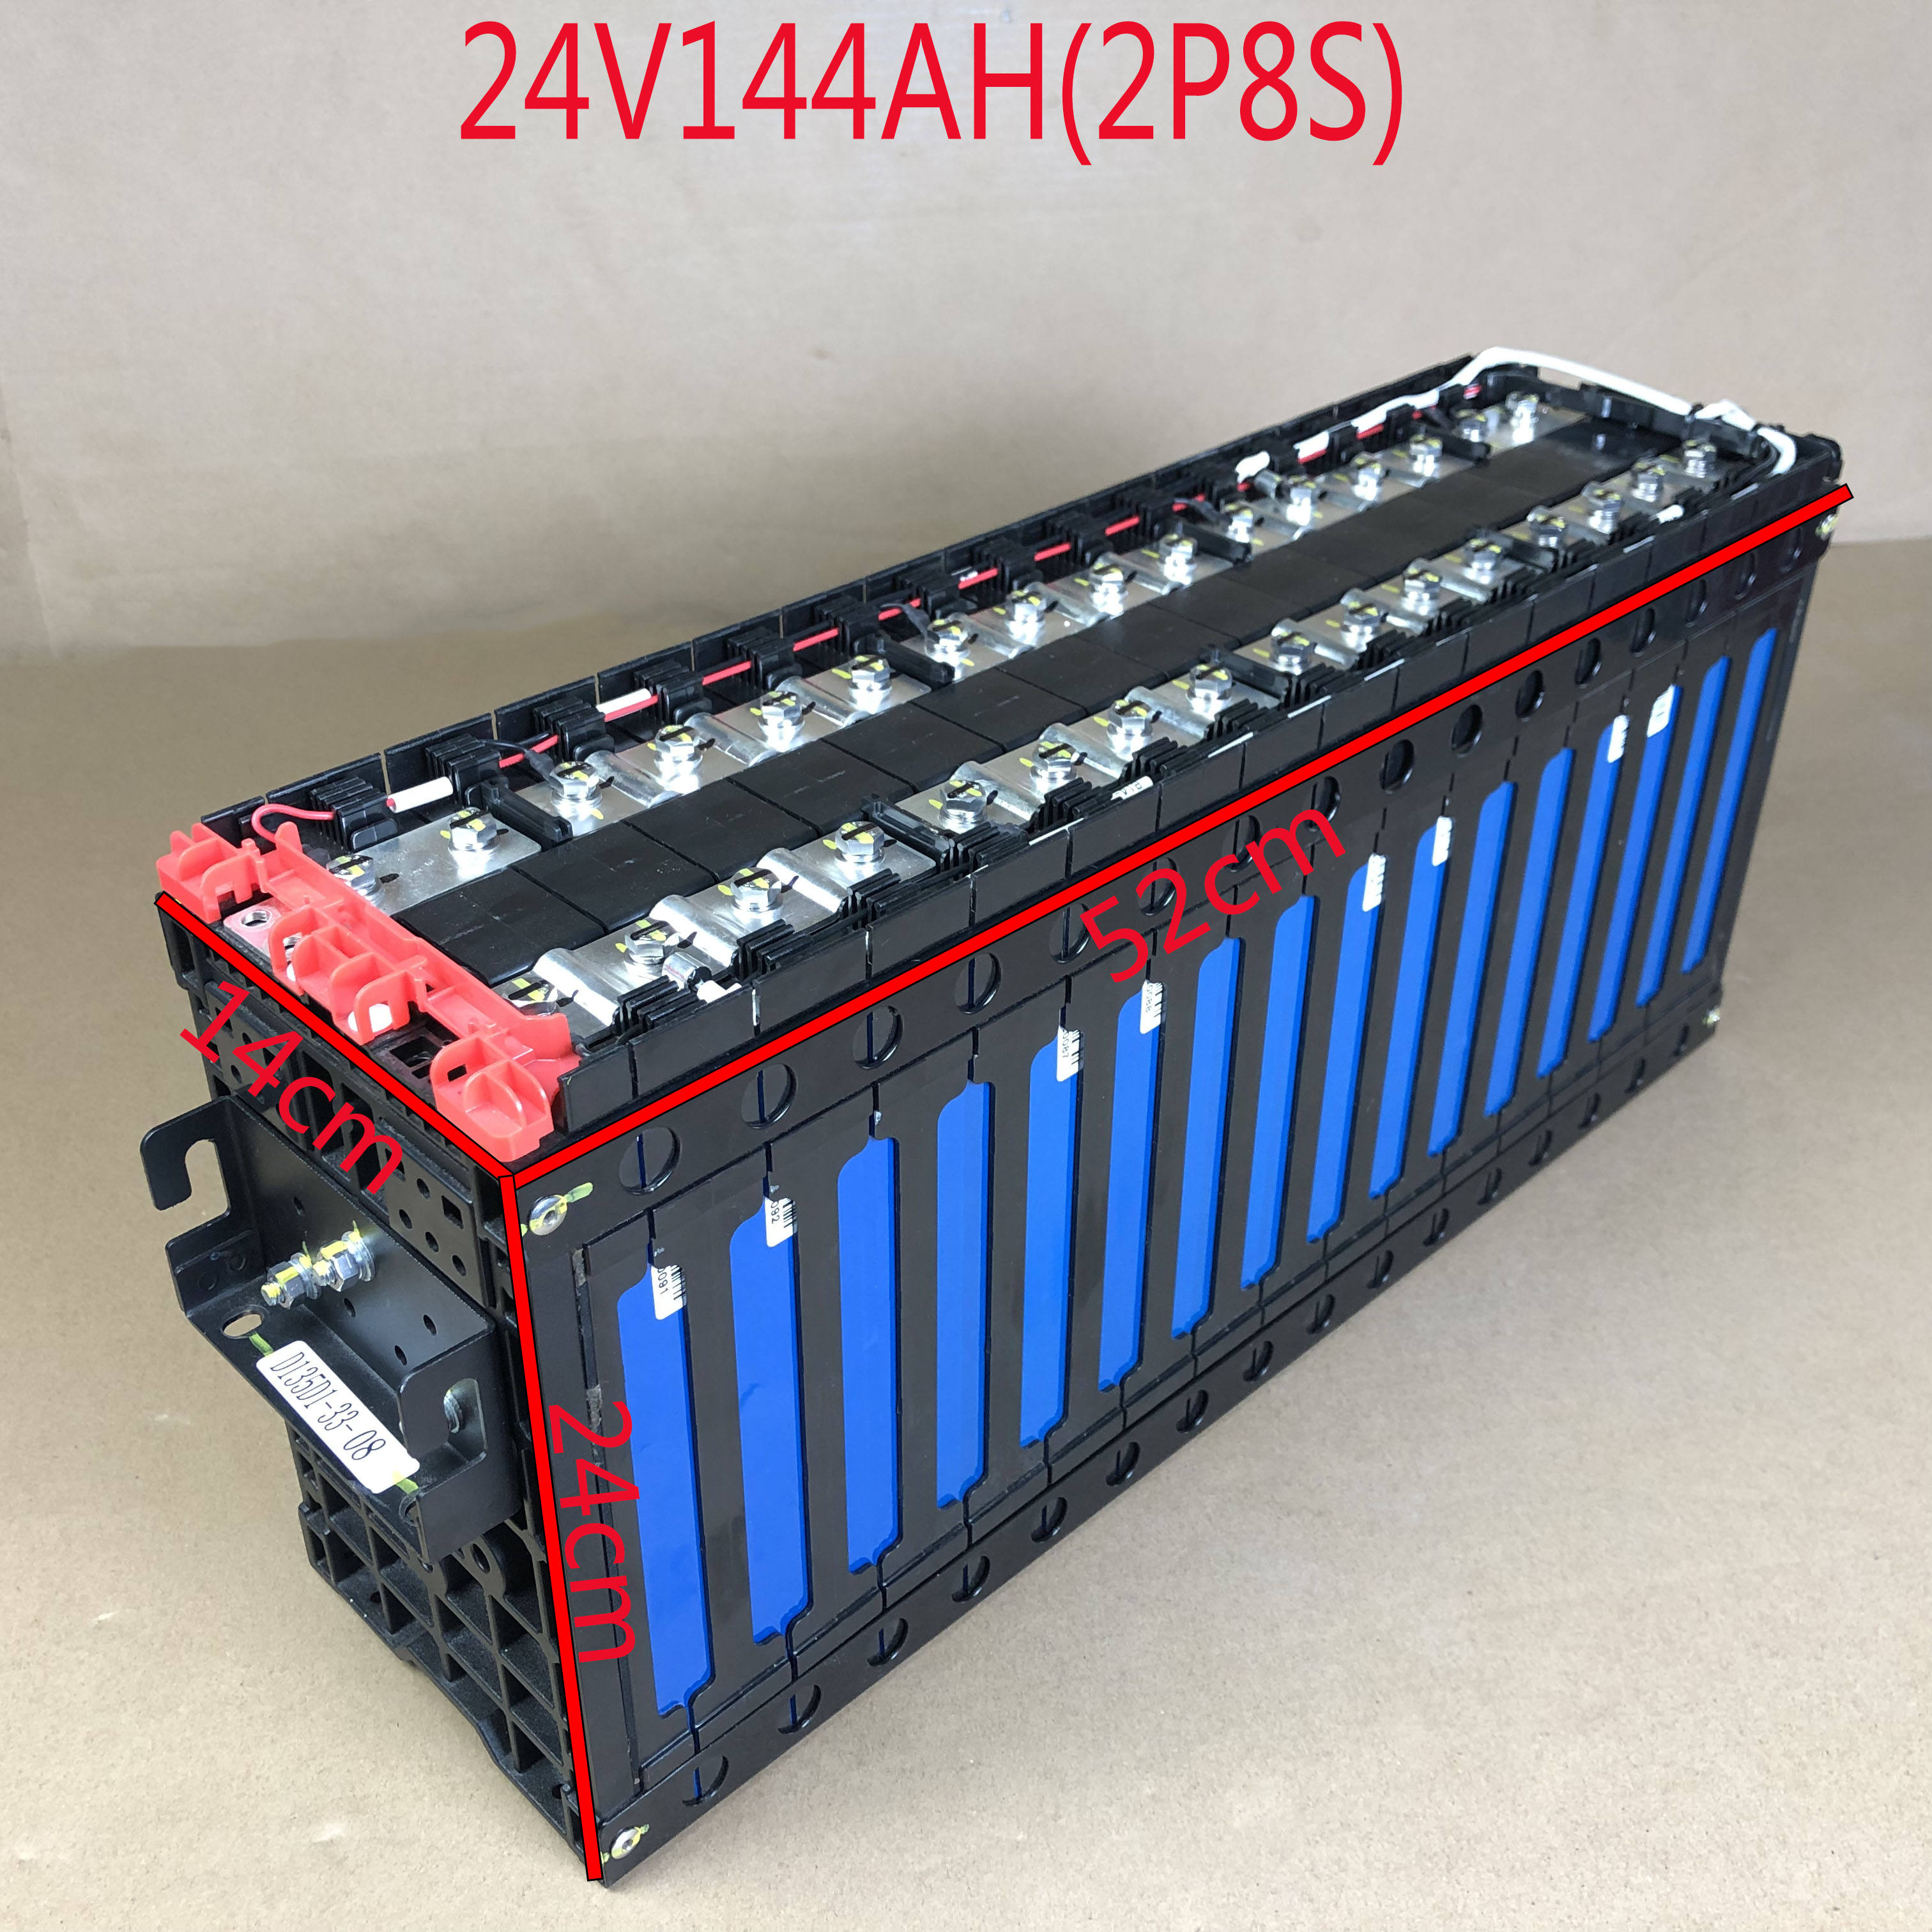 24v144ah2p8s lithium iron phosphate battery pack,Suitable for 24 V power supply scenarios